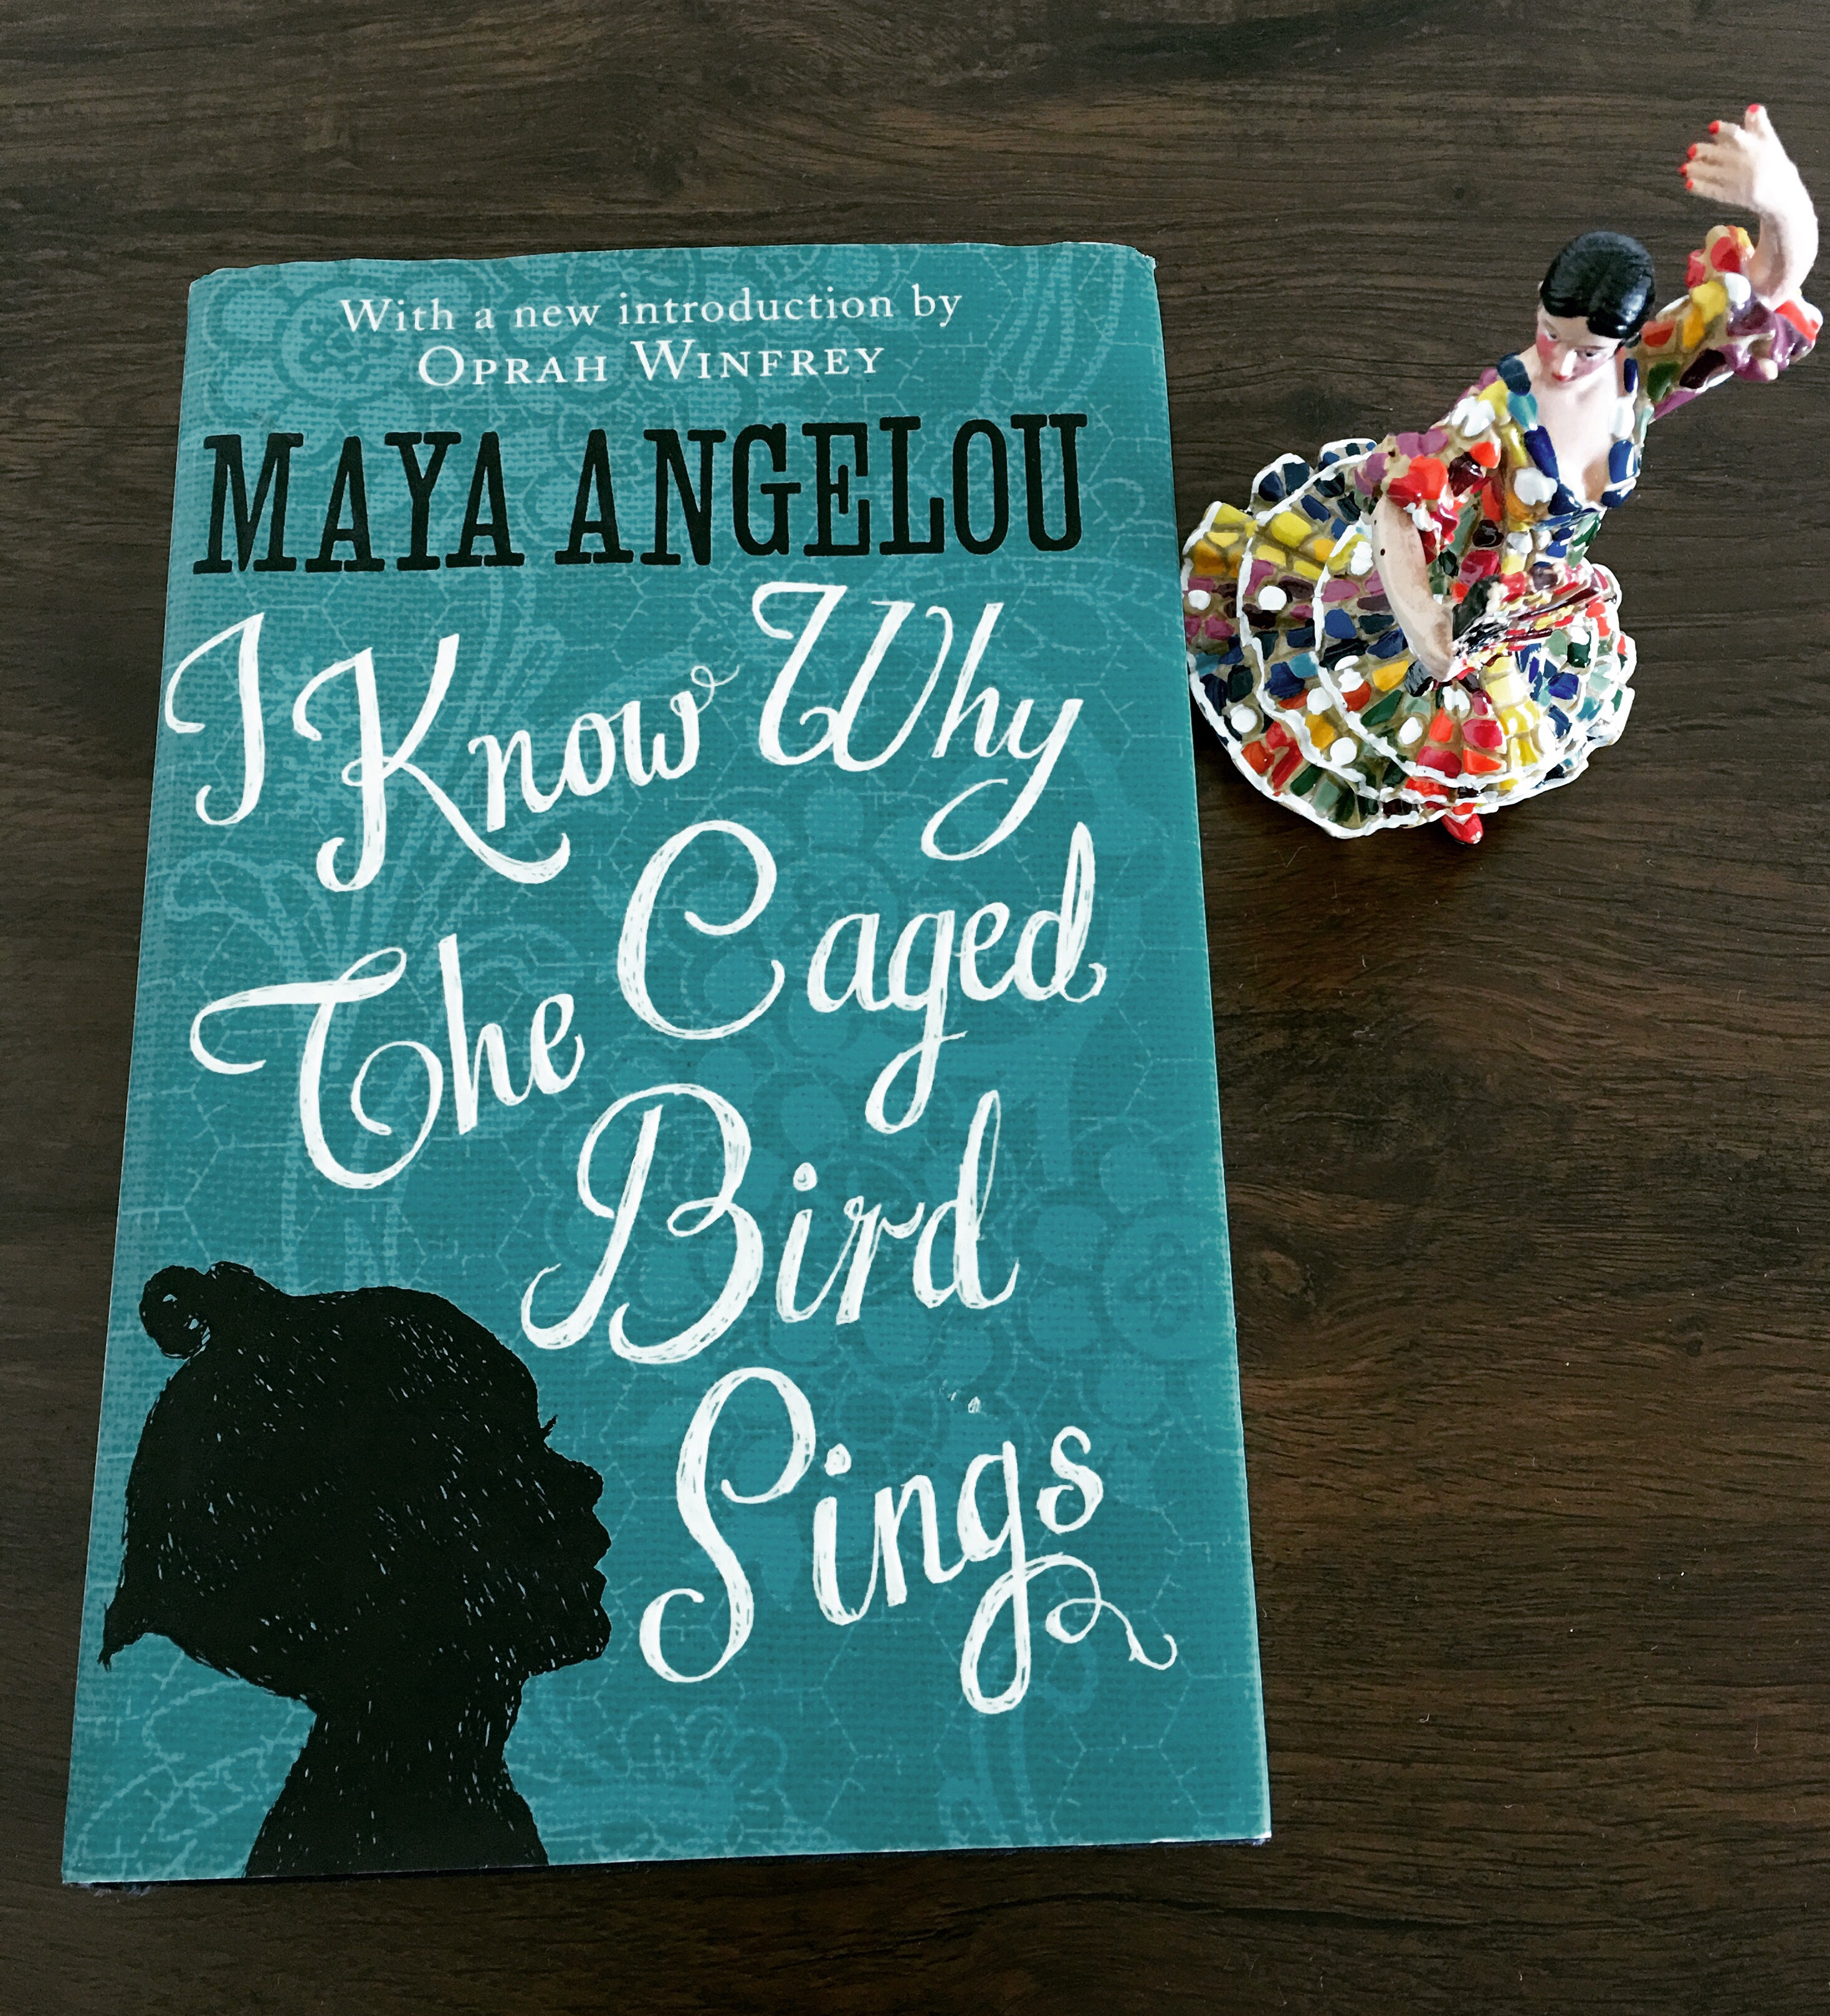 I Know Why The Caged Bird Sings Maya Angelou Megsblogged